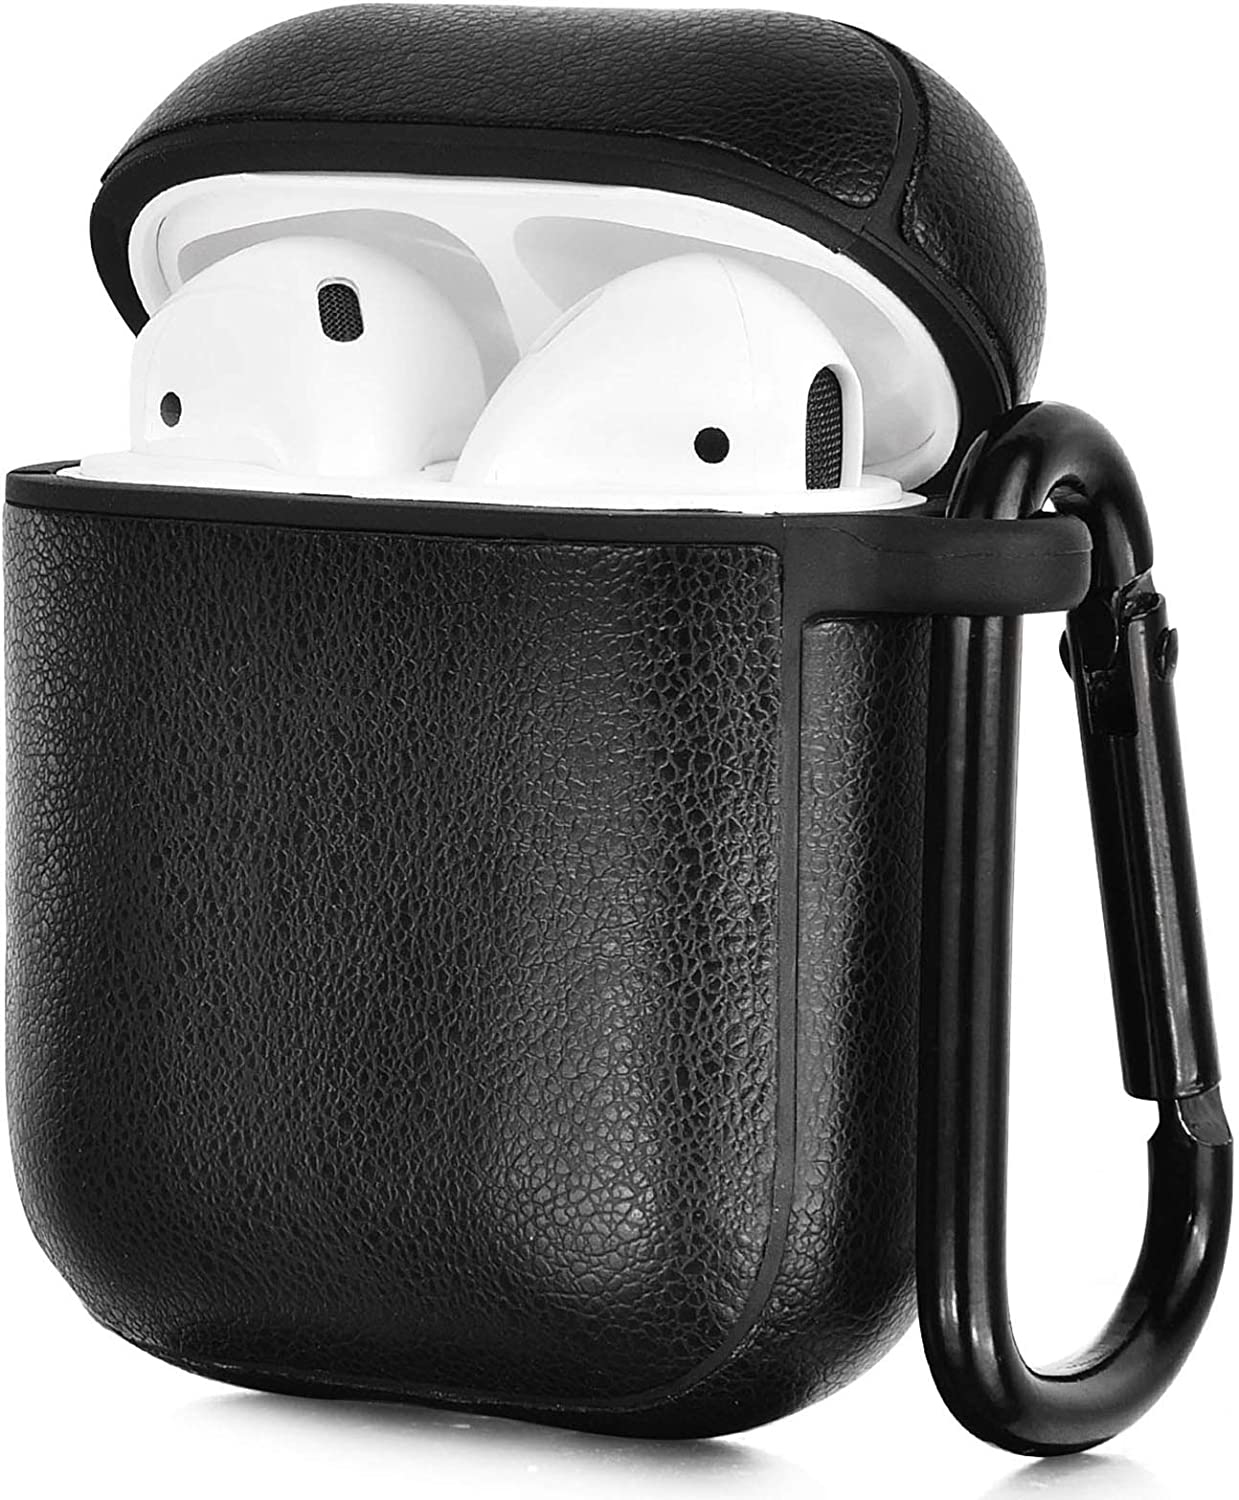 CAGOS Compatible with Airpods Case, Premium Leather Airpods Protective Cover Case for Apple AirPod 2&1 Earphones Charging Case Black